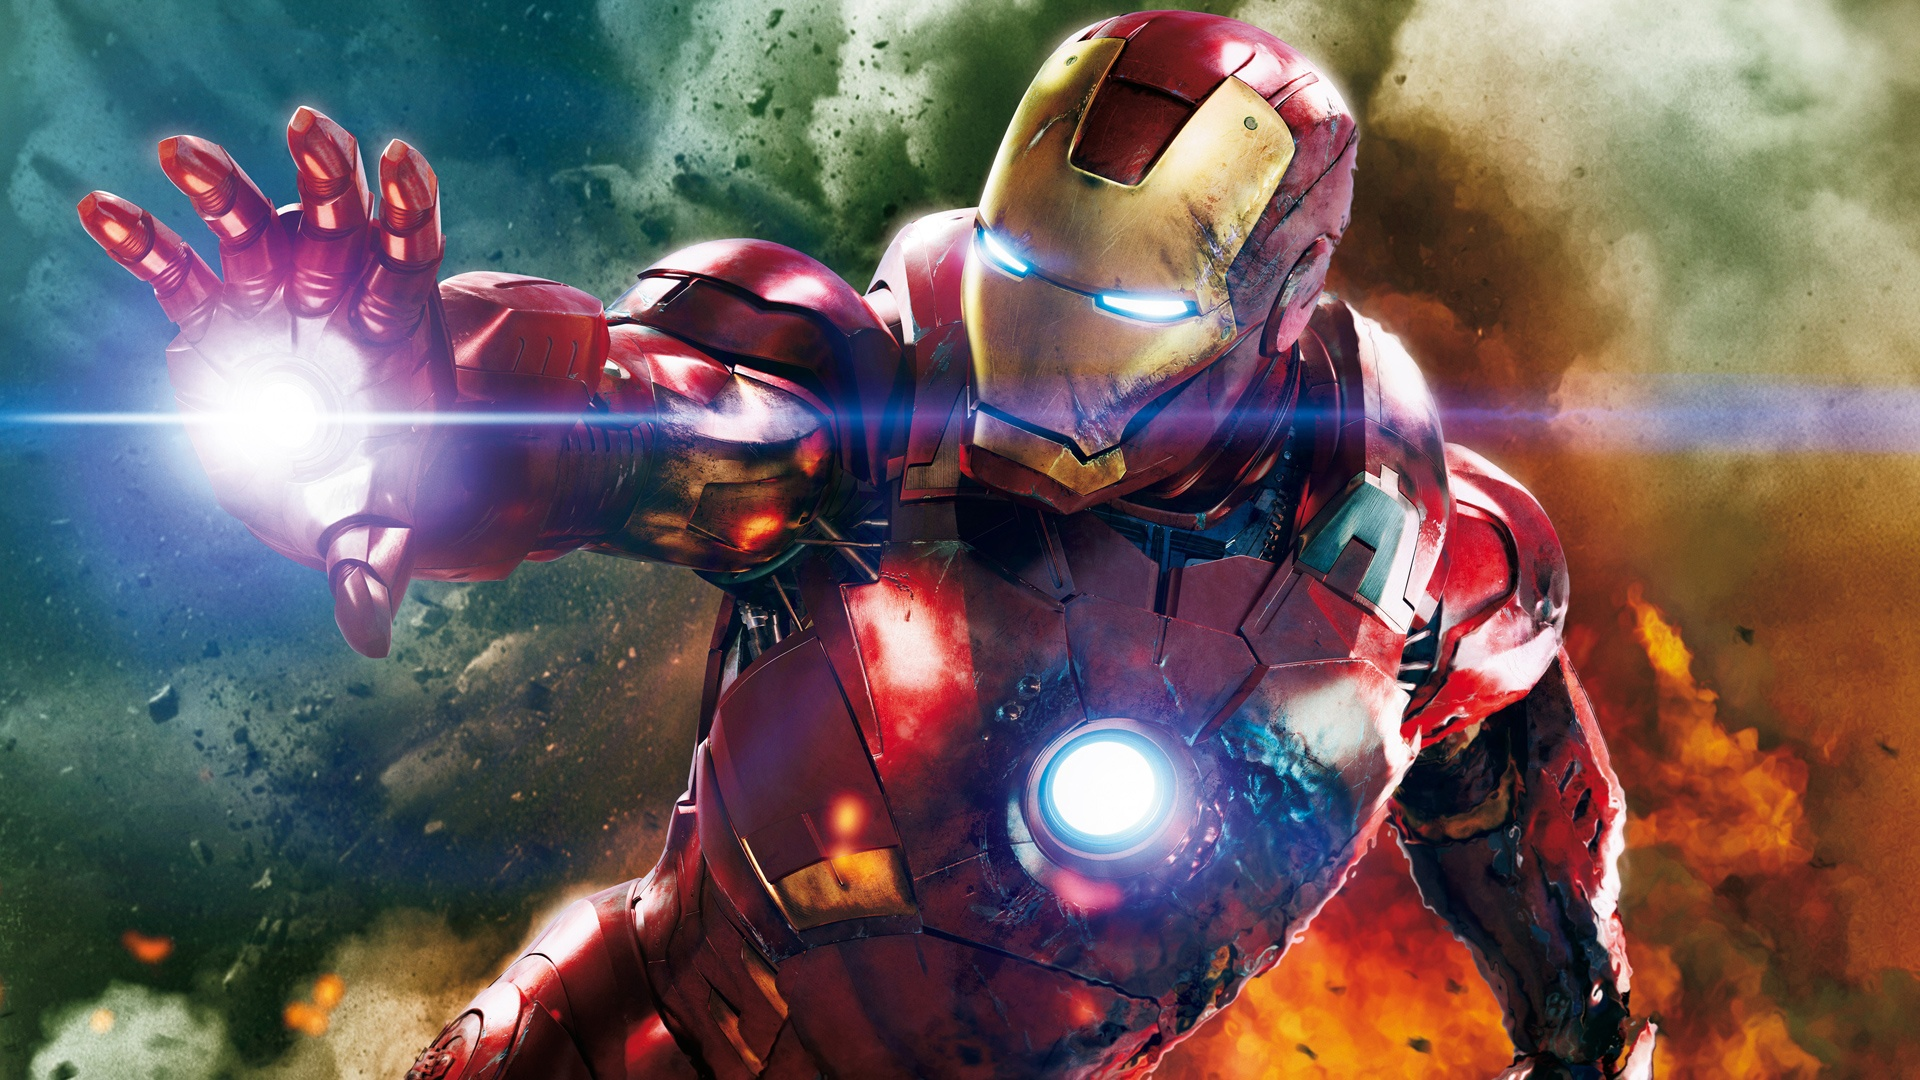 The Avengers Iron Man Wallpapers HD Wallpapers 1920x1080